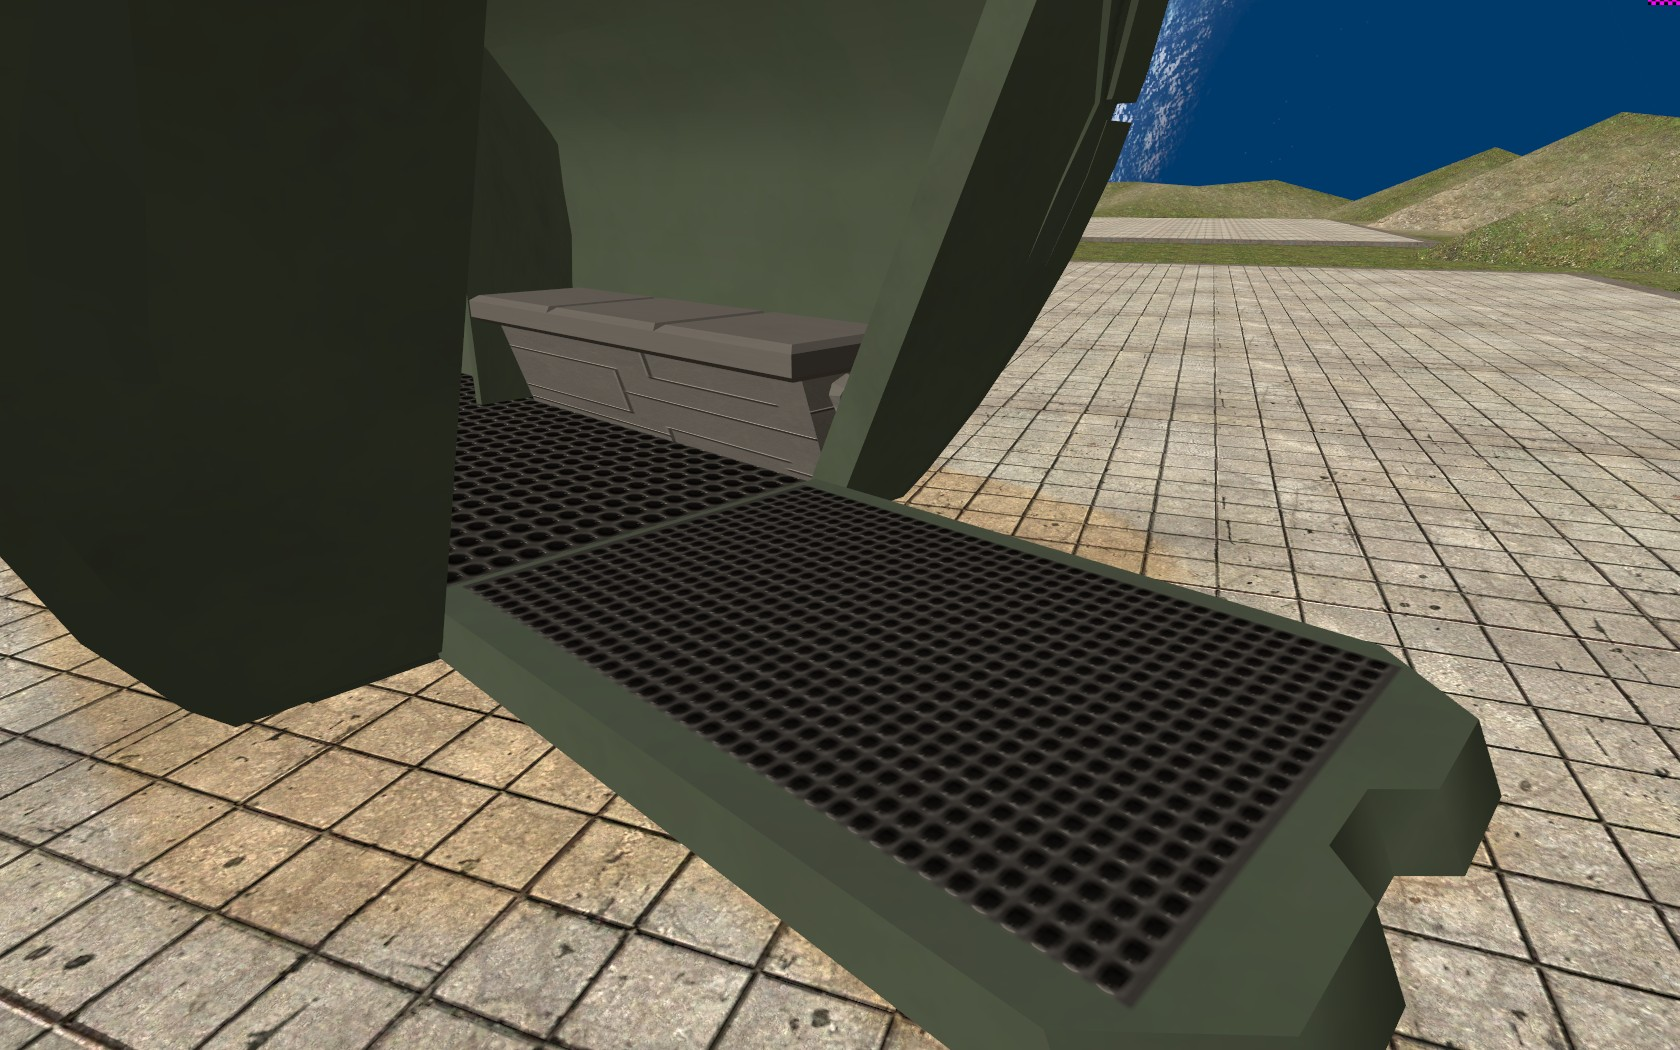 how to get to settings in gmod